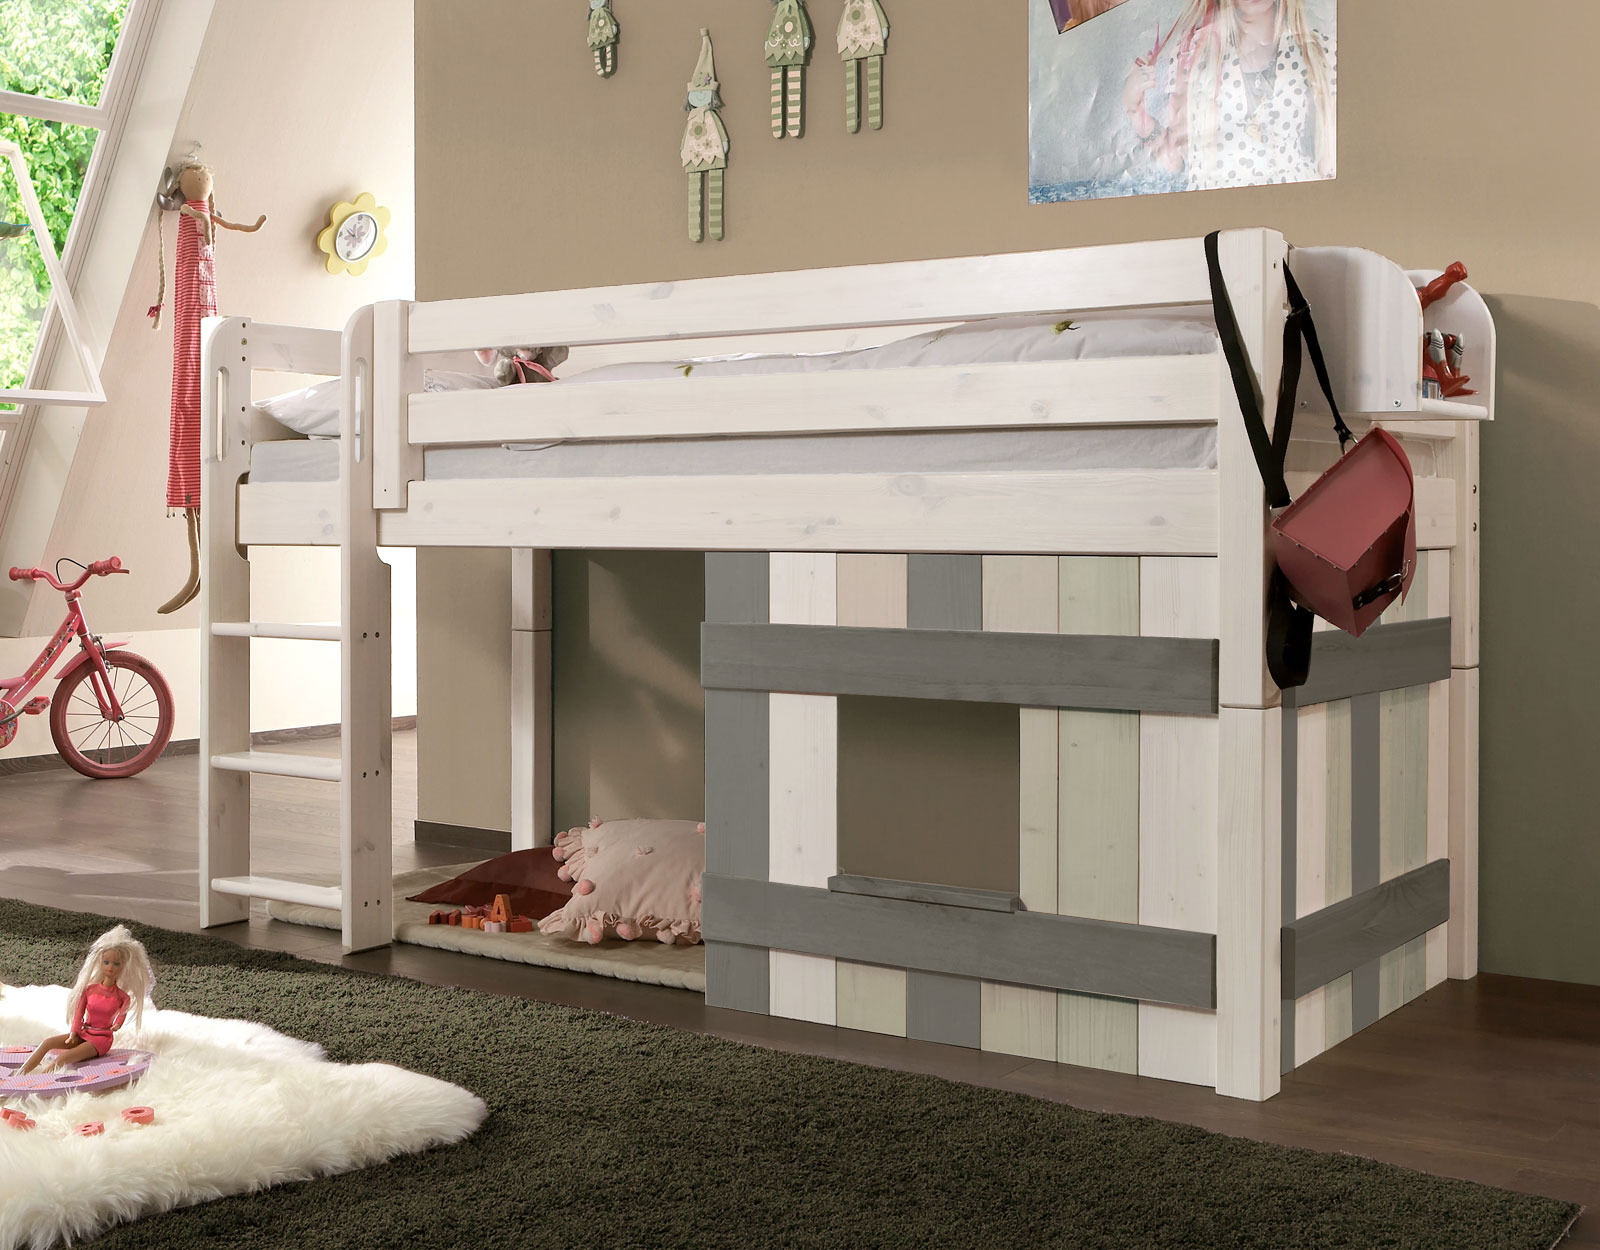 ein wahres kinderparadies aus stabilem kiefer massivholz in wei. Black Bedroom Furniture Sets. Home Design Ideas